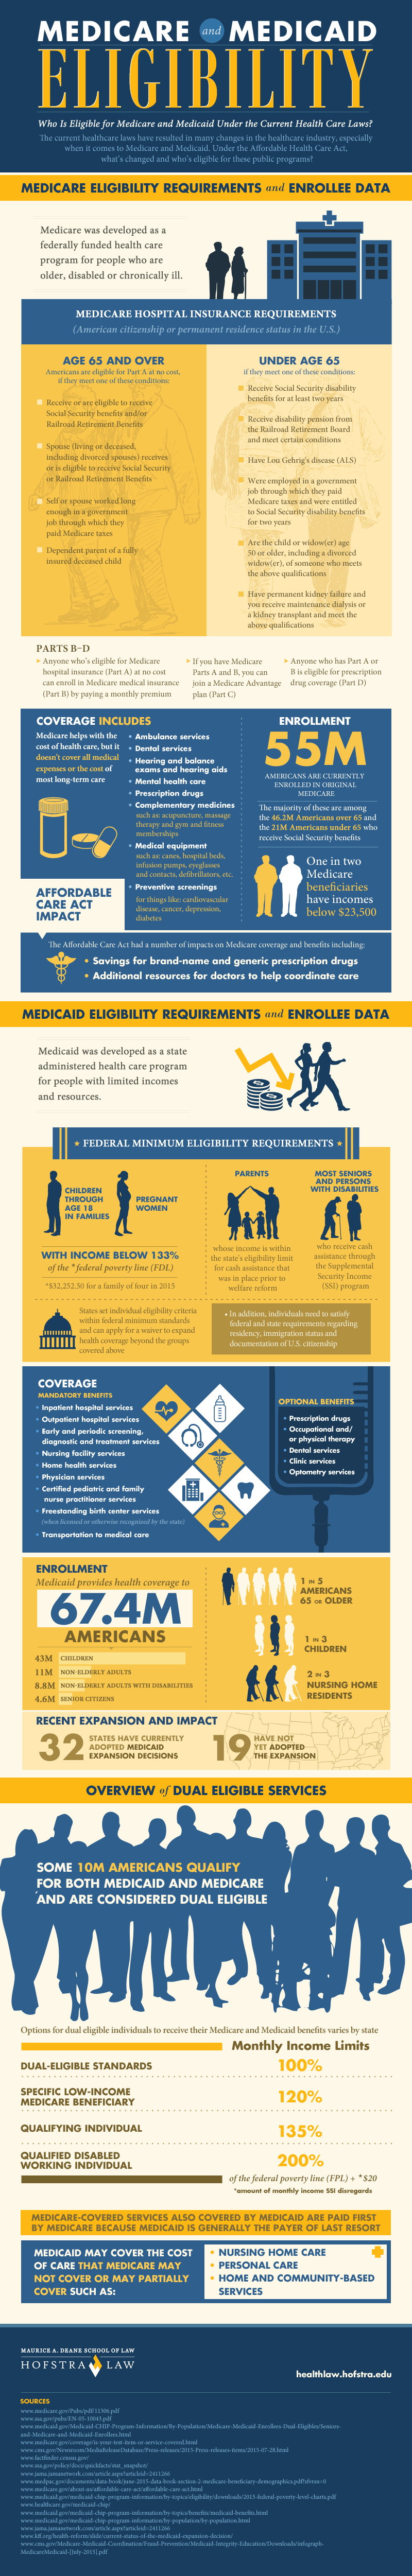 Infographic on Medicare and Medicaid Eligibility